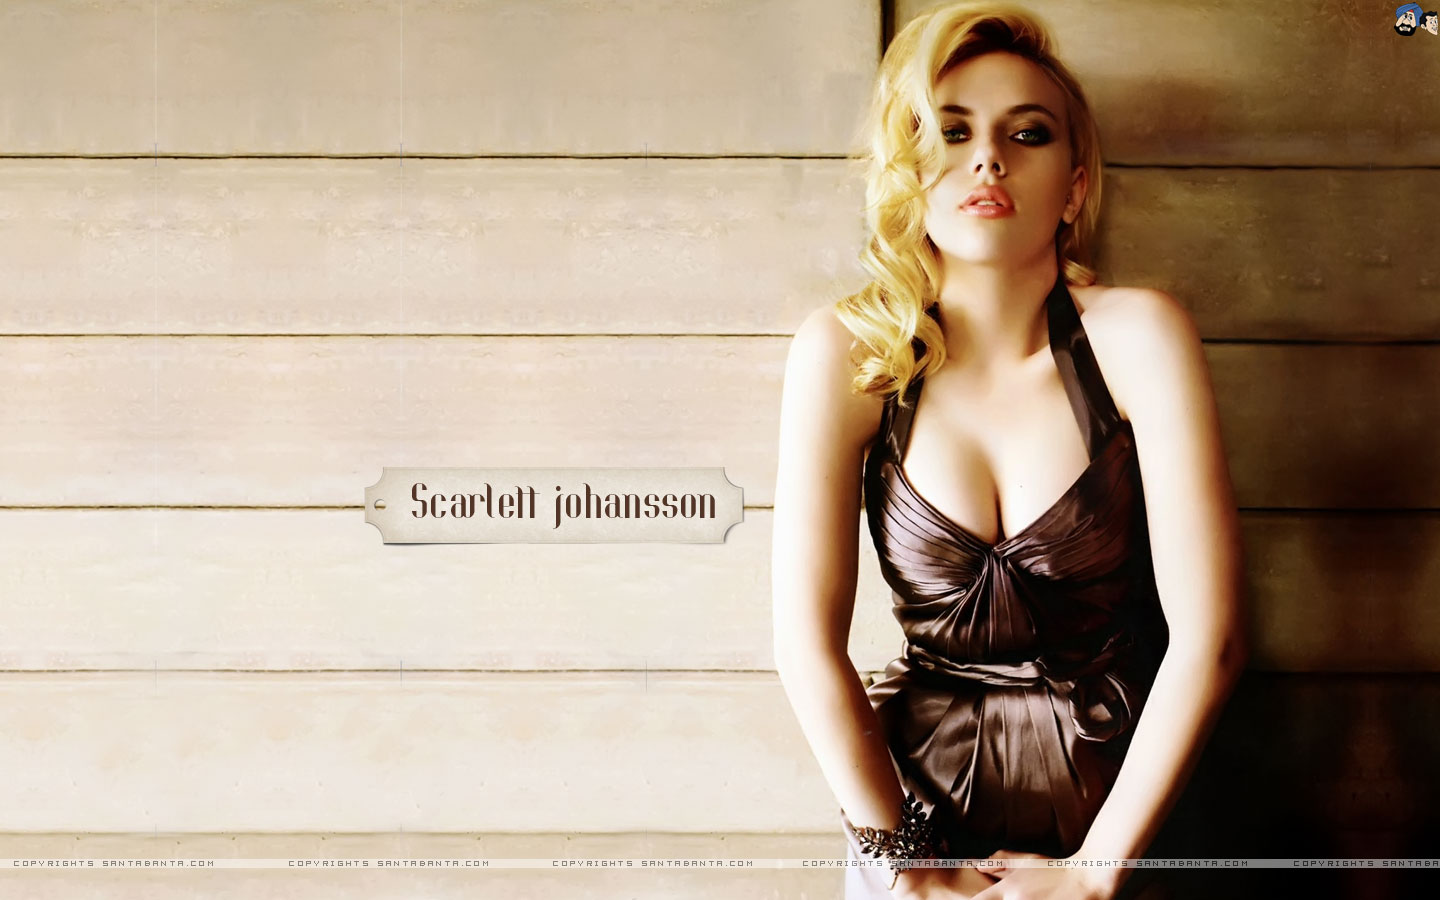 scarlett johansson model - photo #32